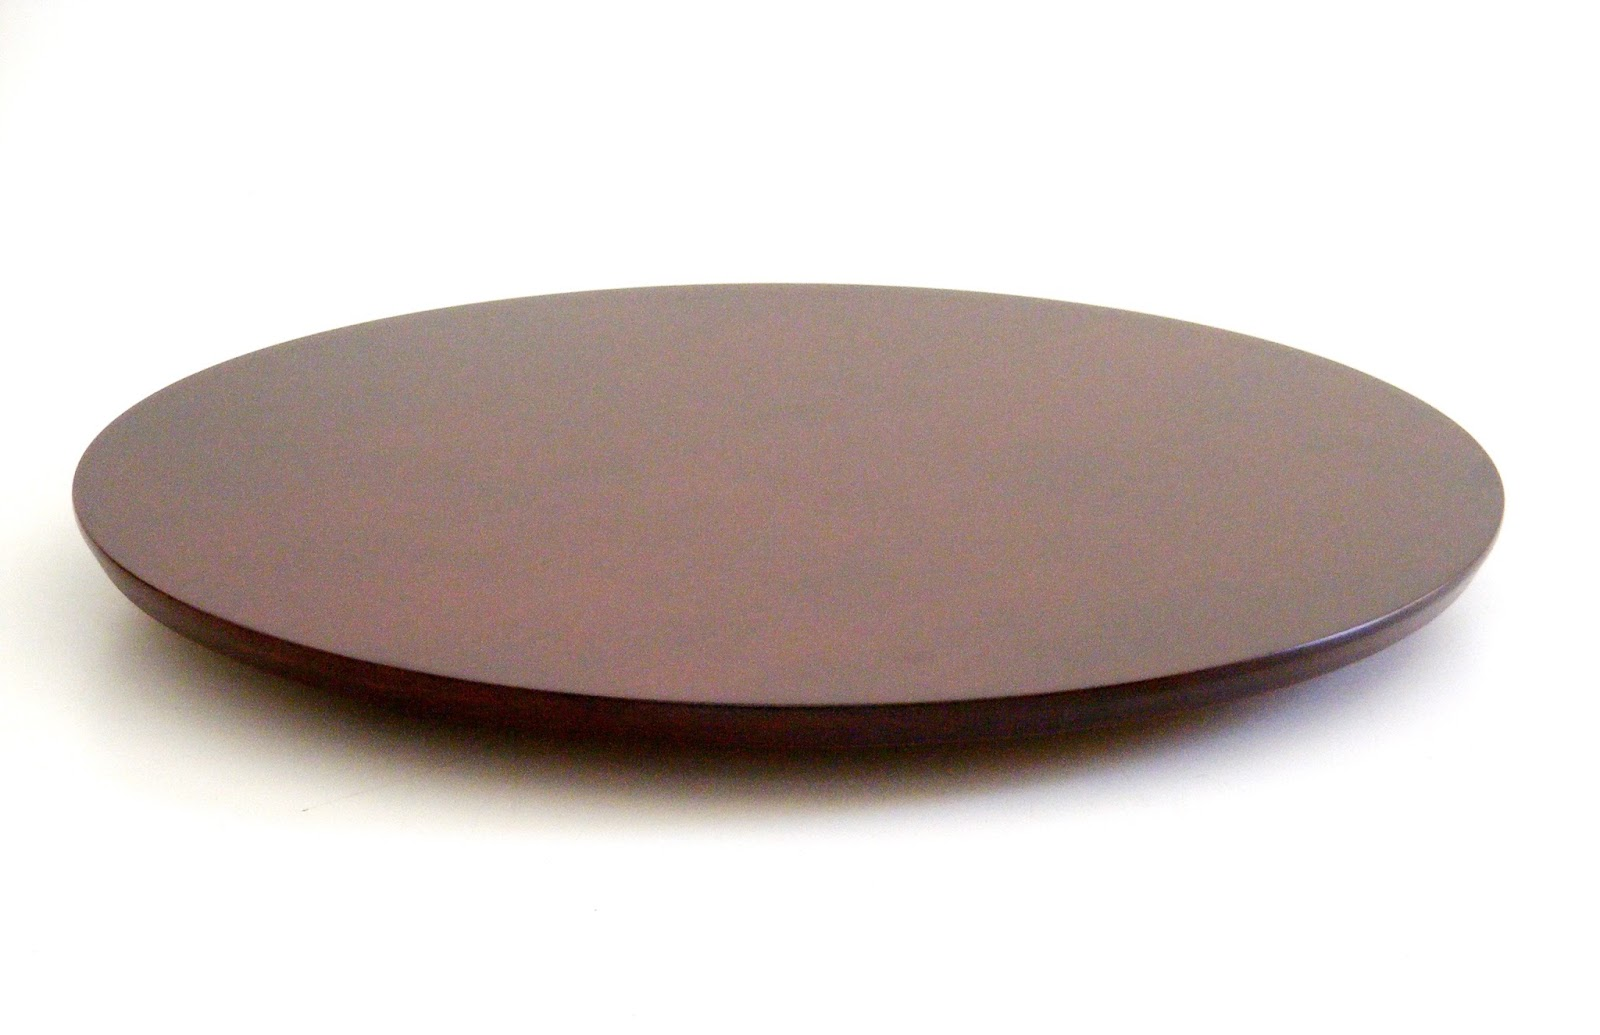 A 1970 S Solid Wood Lazy Susan Diameter 57cm Height 5cm R1850 Call Us On 021 448 2755 Or Email Info Vampfurniture Co Za